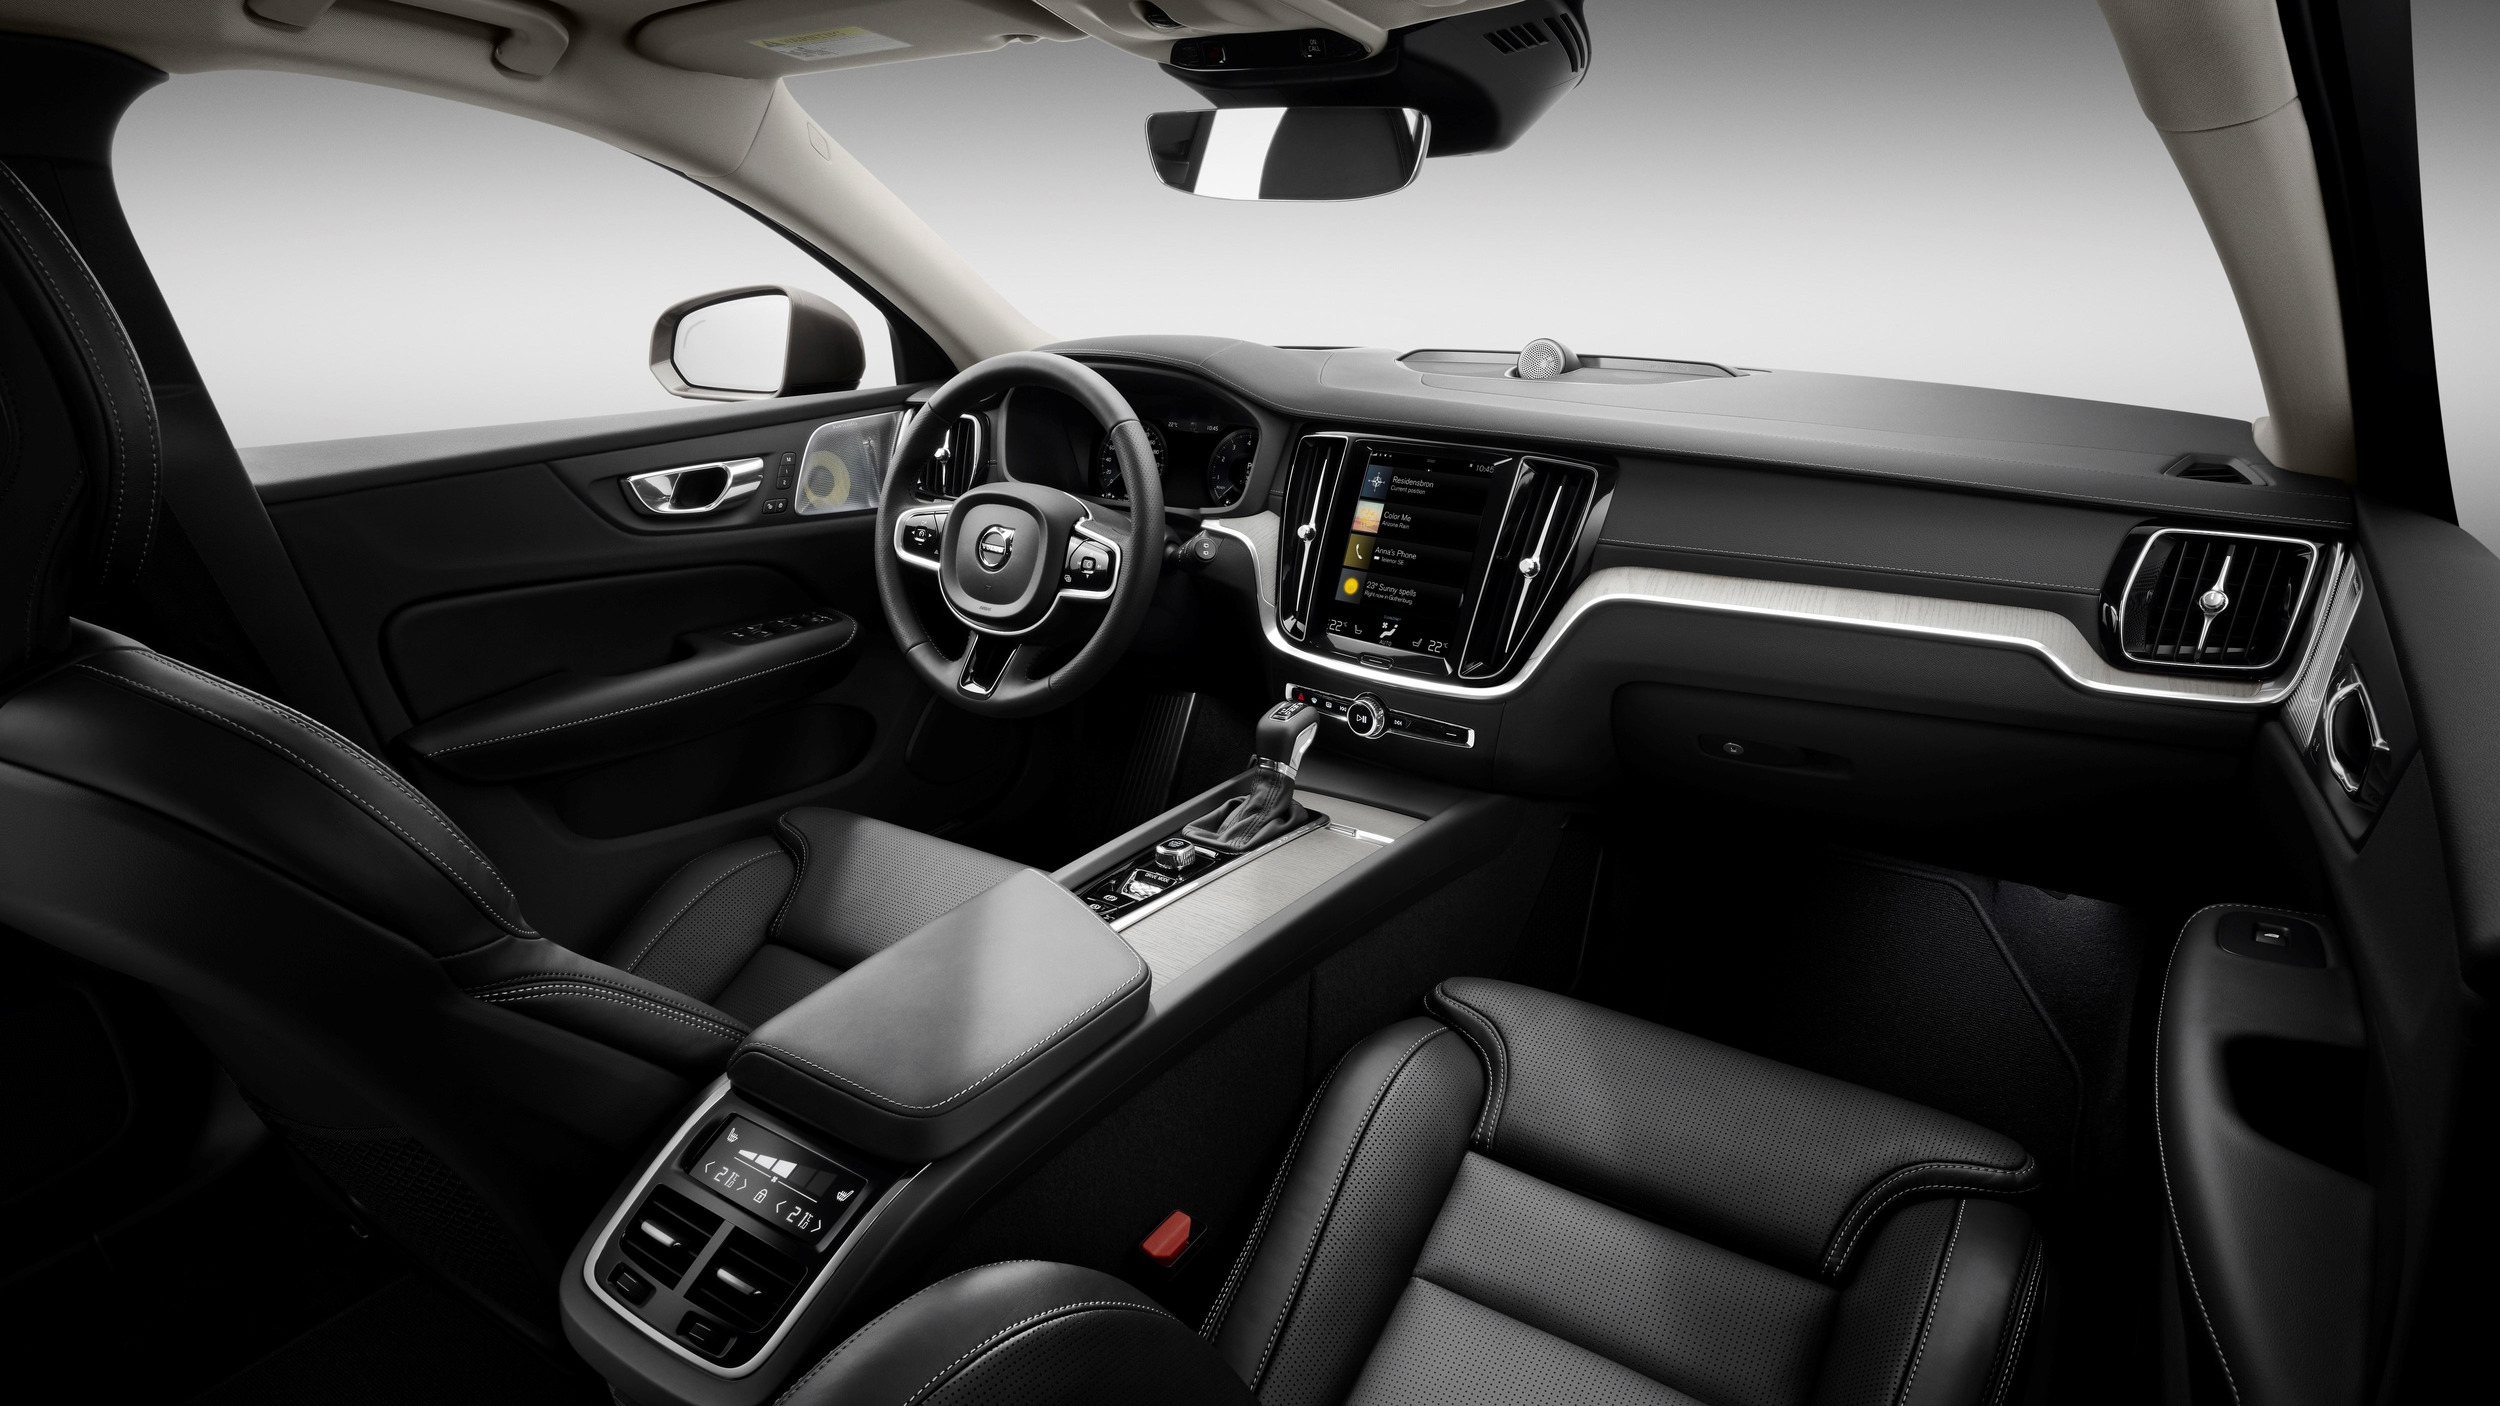 224661-new-volvo-v60-interior-1